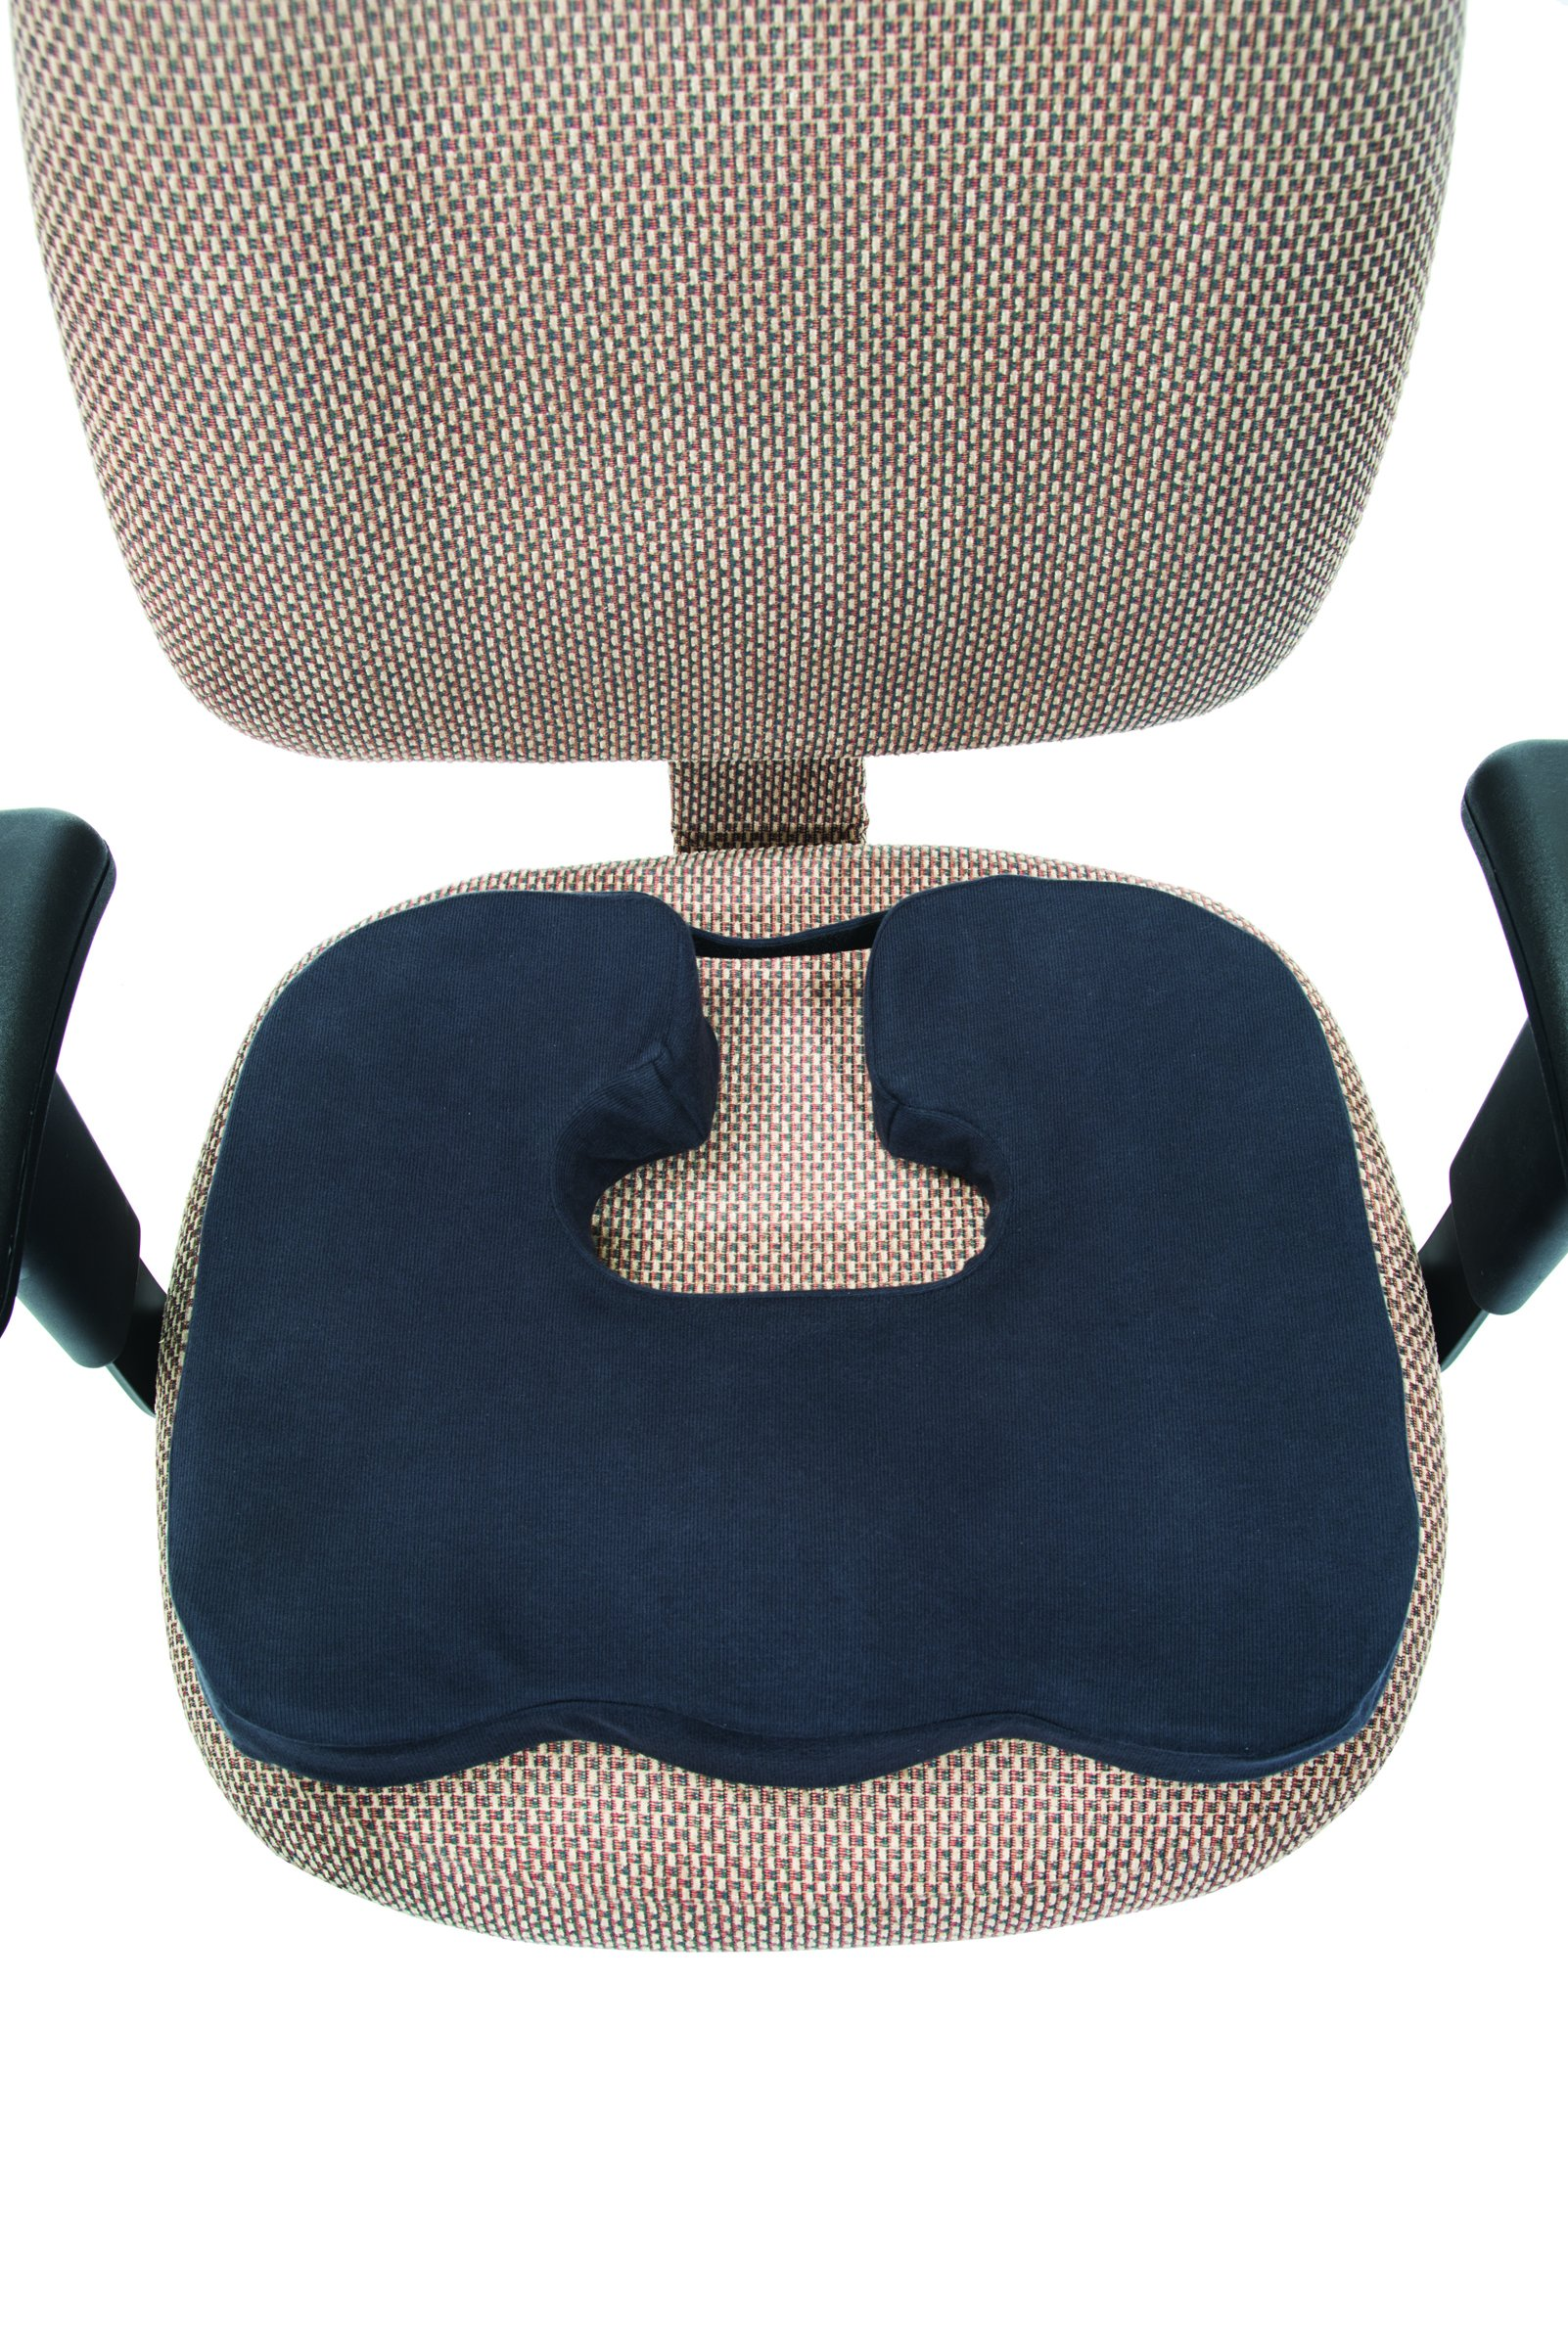 Essential Medical Supply The Cushion, the only 3-in-1 Designed to be a Molded Comfort, Tailbone or Donut Cushion by Essential Medical Supply